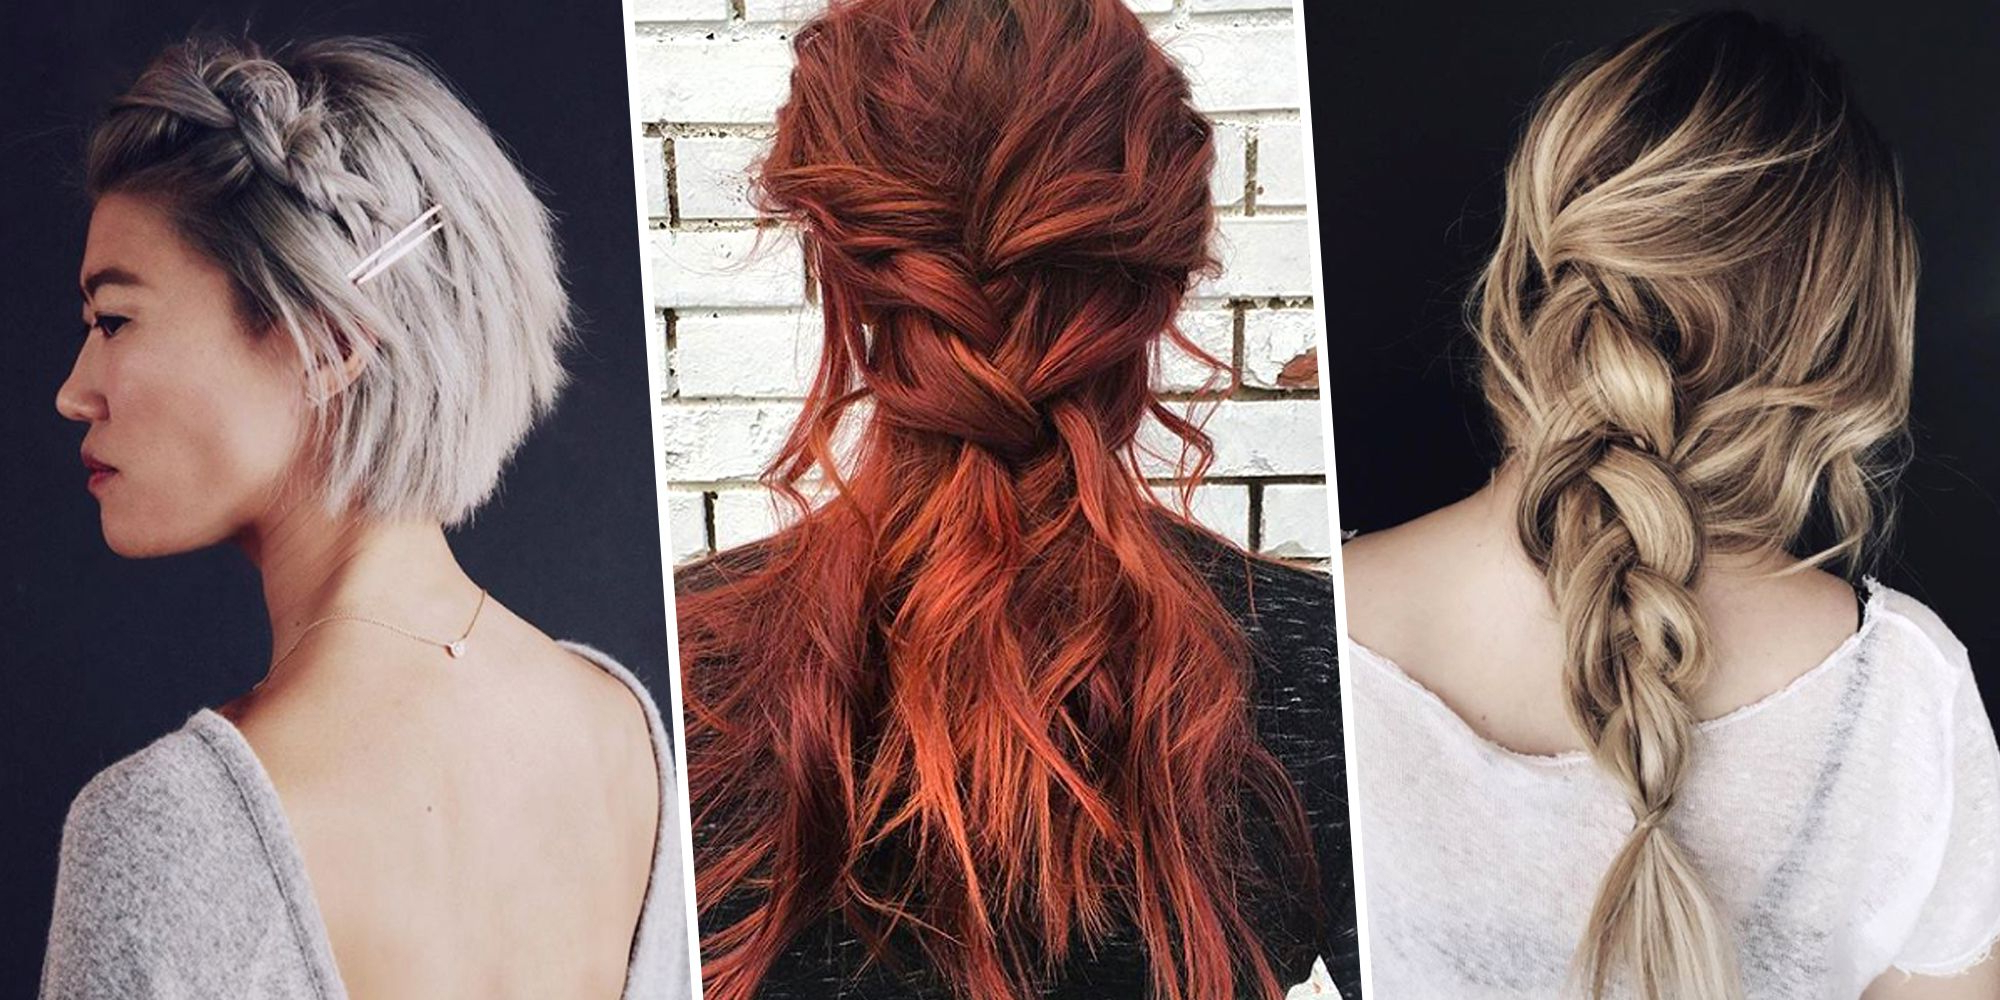 8 Messy, Easy Braid Ideas To Copy – Best Braided Hairstyles Throughout Recent Messy Crown Braid Hairstyles (View 3 of 20)